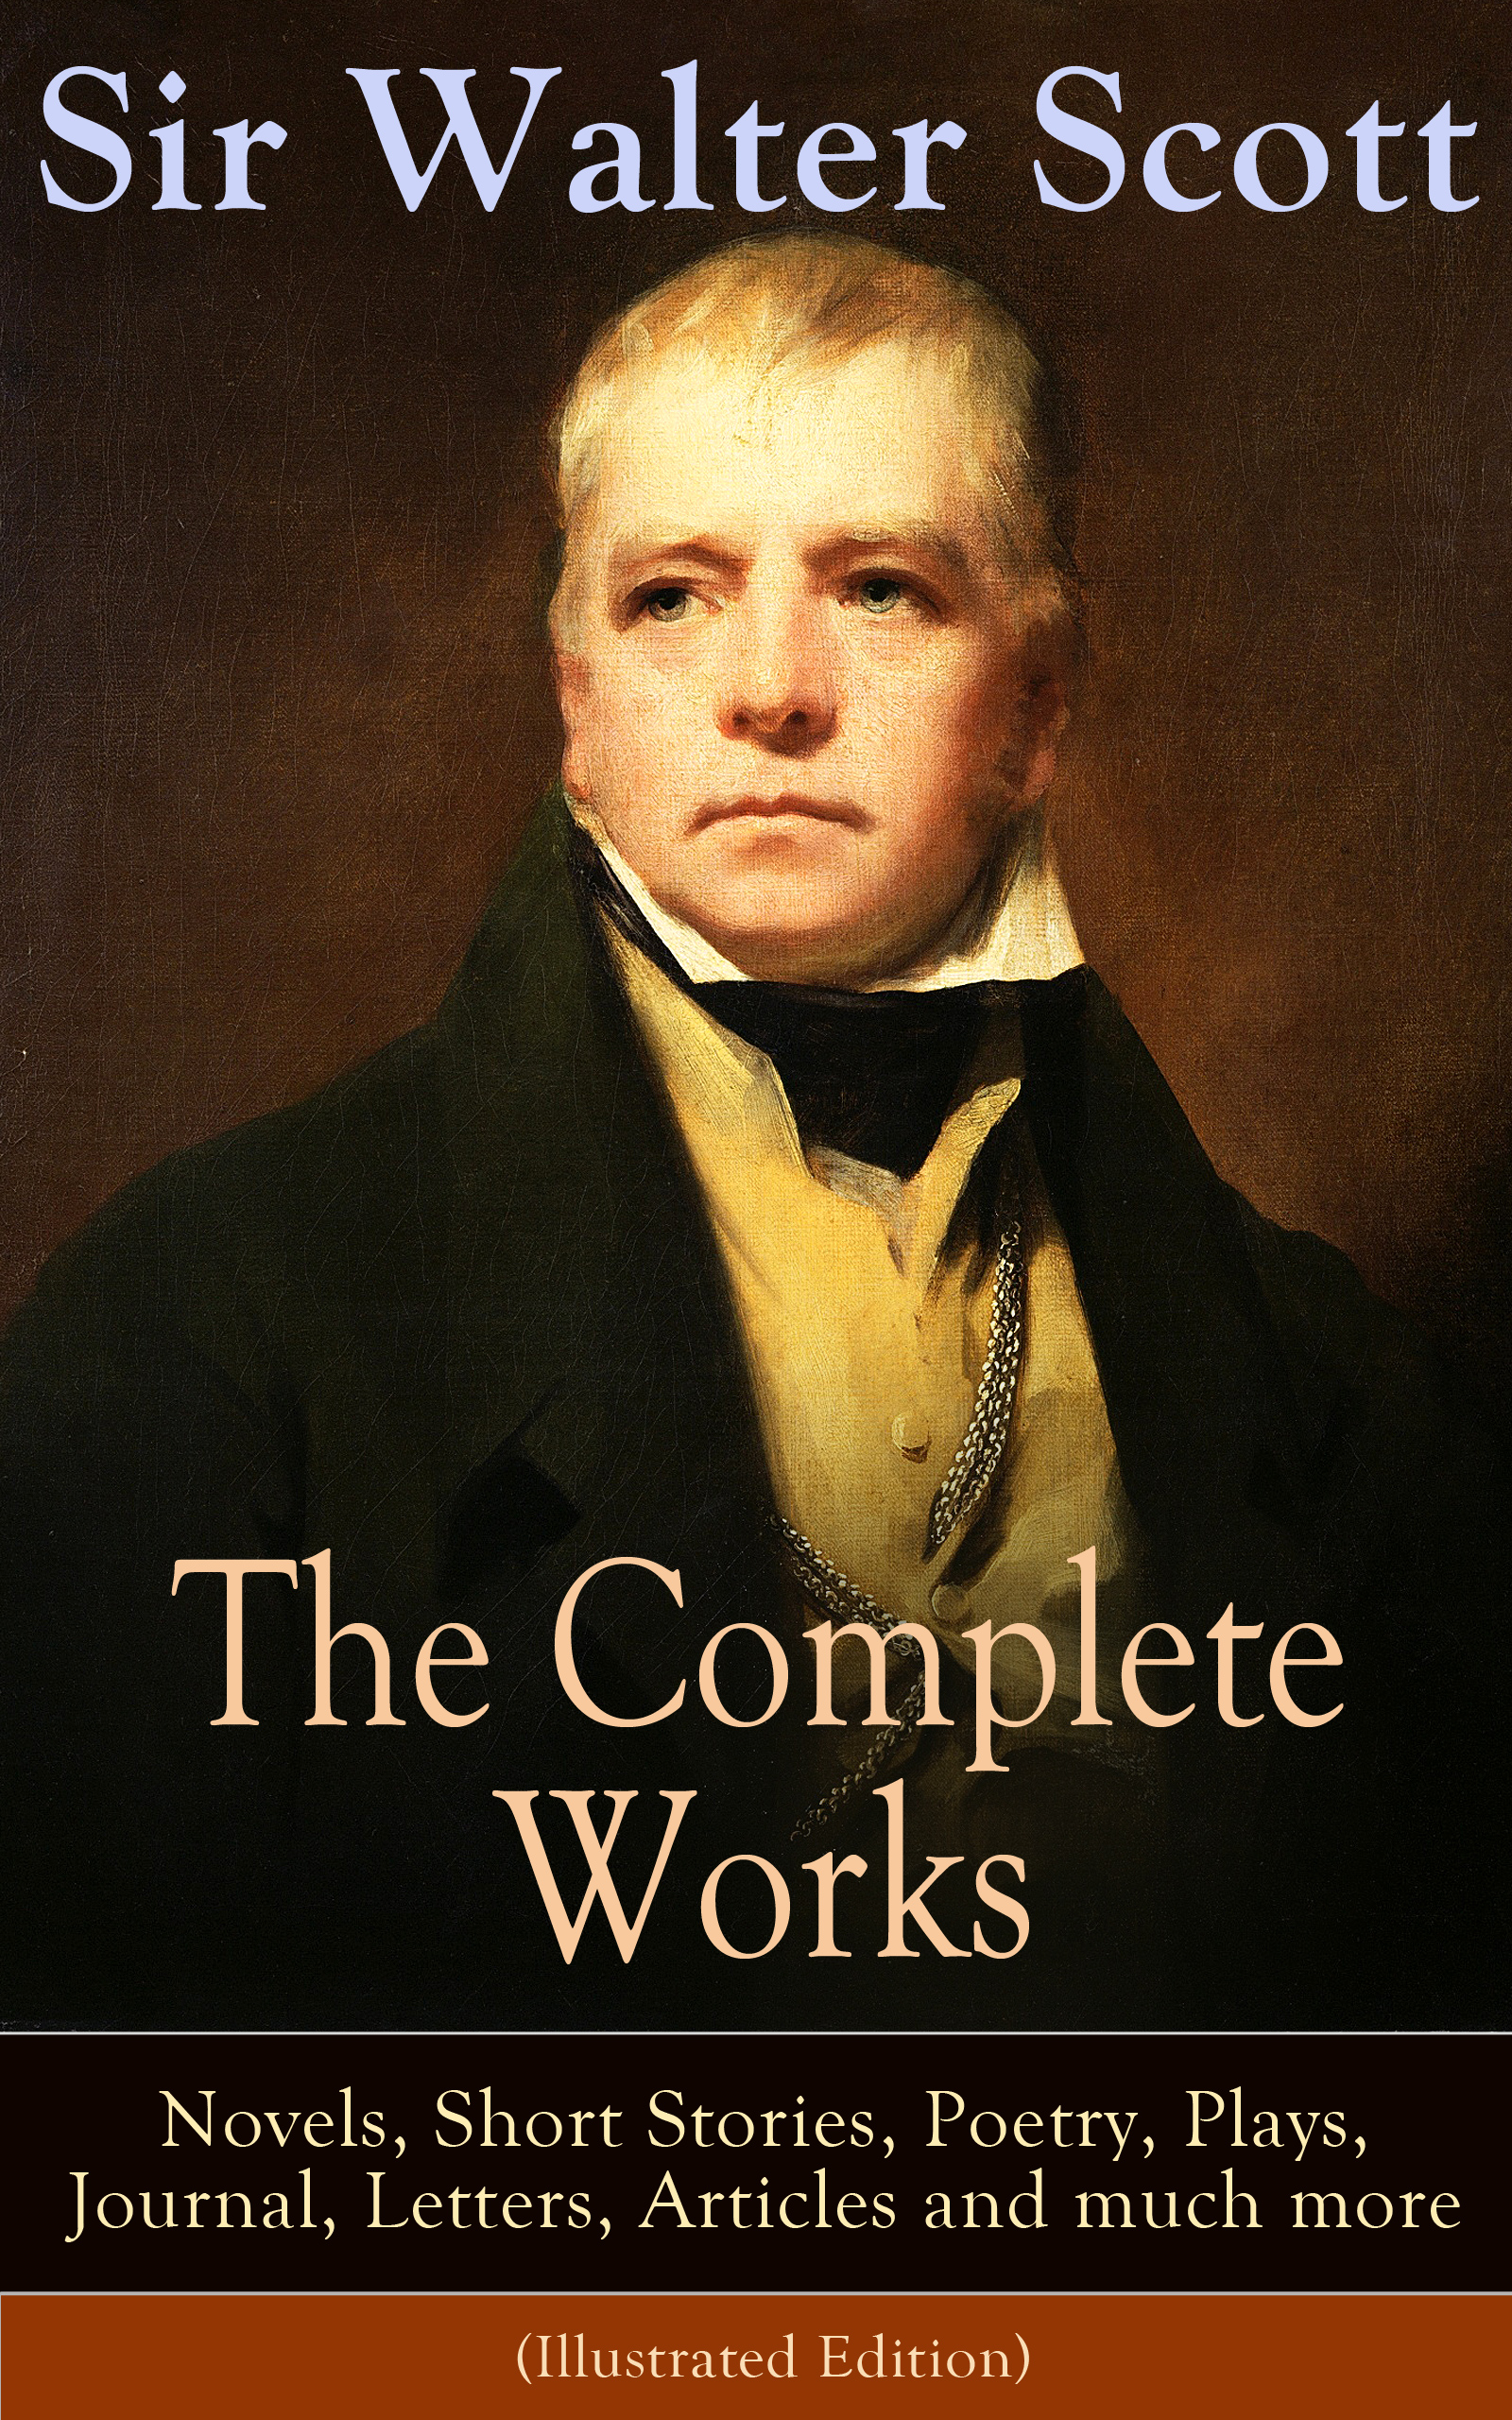 Walter Scott The Complete Works of Sir Walter Scott: Novels, Short Stories, Poetry, Plays, Journal, Letters, Articles and much more (Illustrated Edition) walter scott tales of my landlord the stories from the scottish highlands illustrated edition